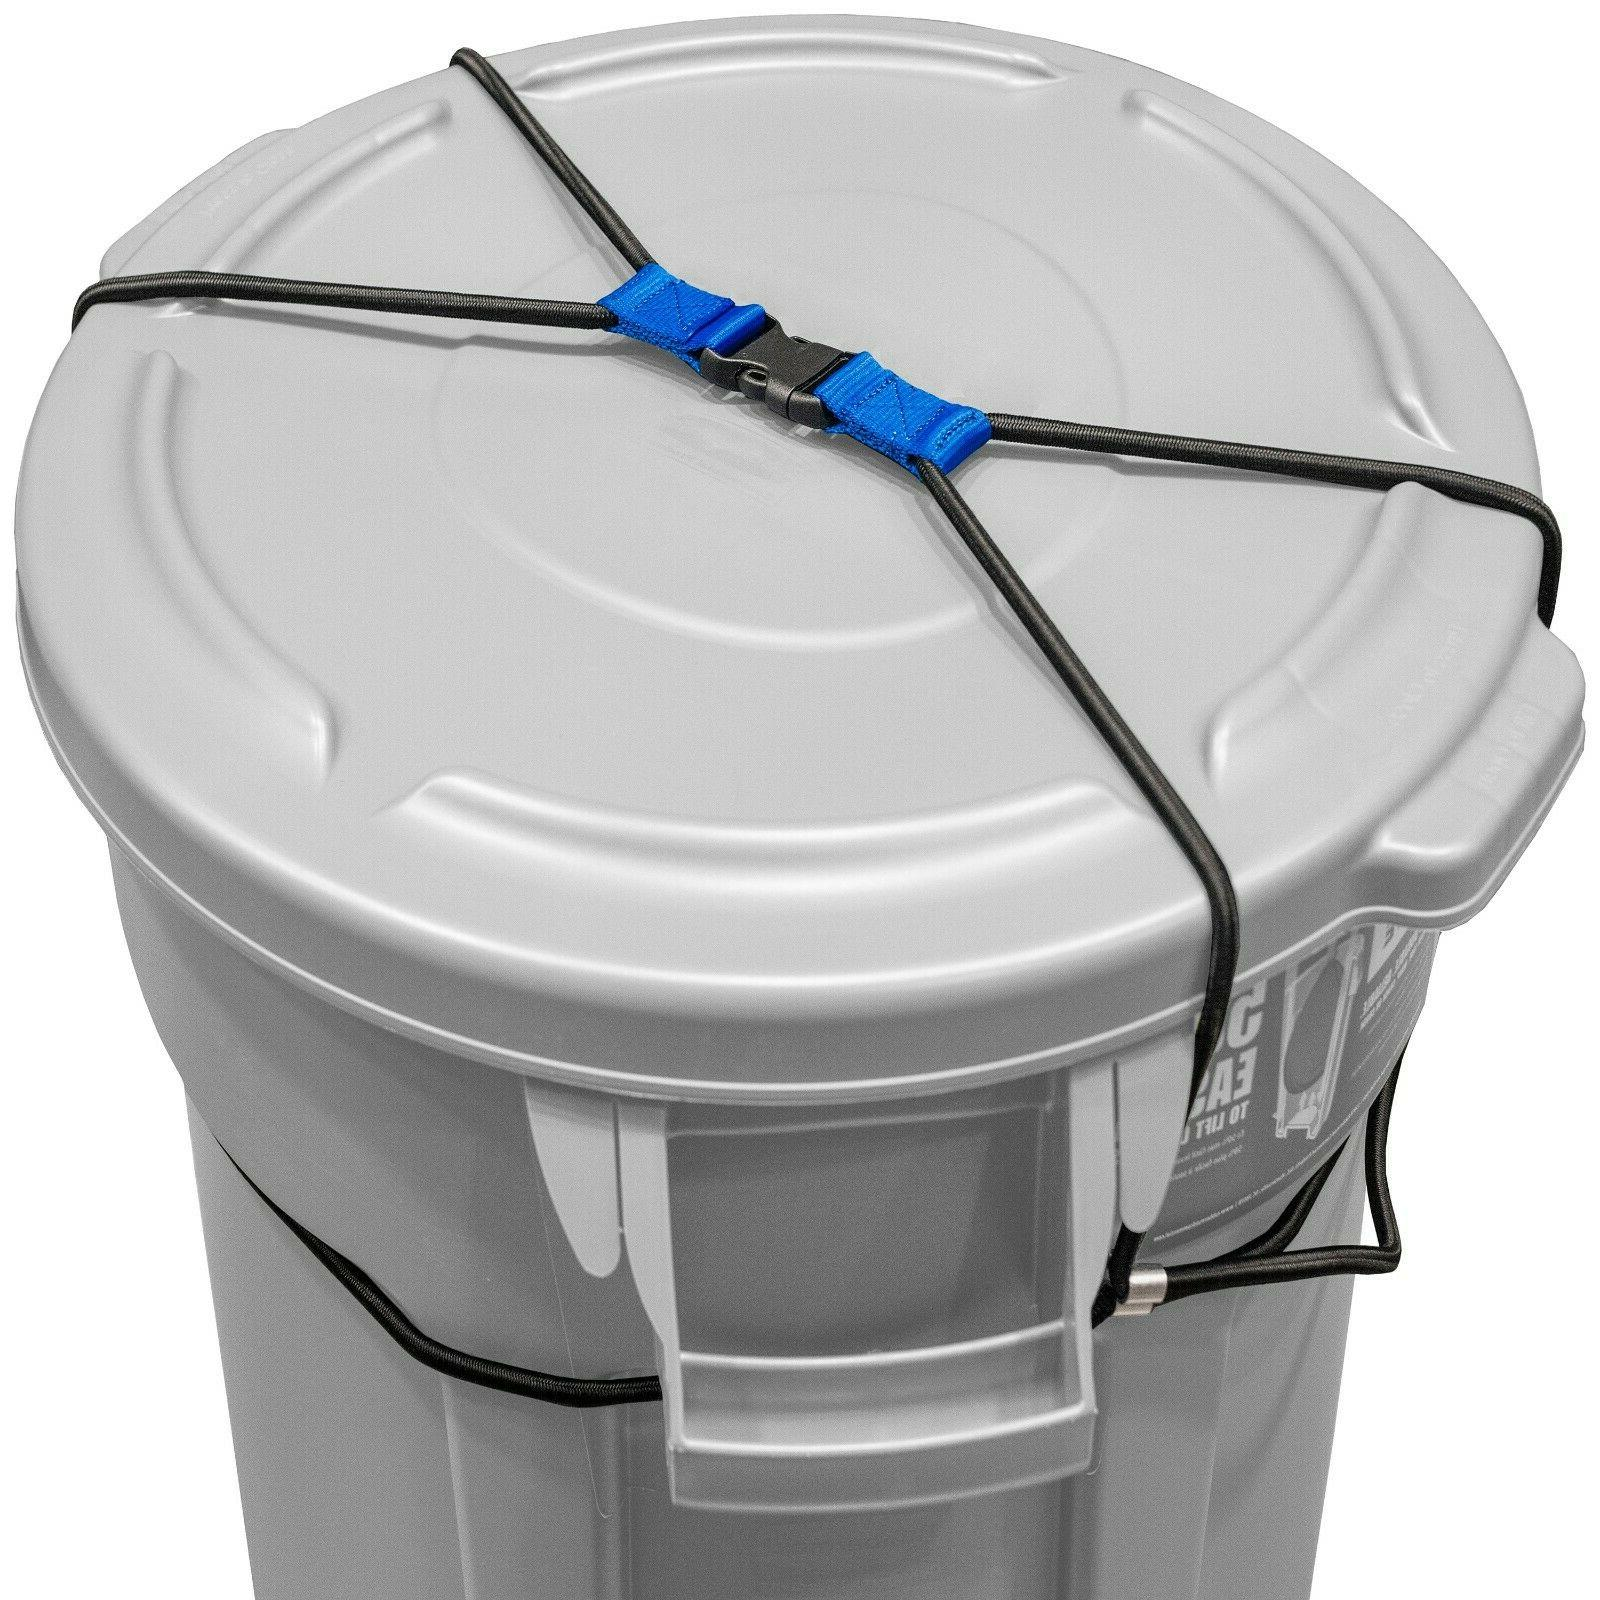 Outdoor TRASH for Animals Heavy Duty Cord Garbage Lid